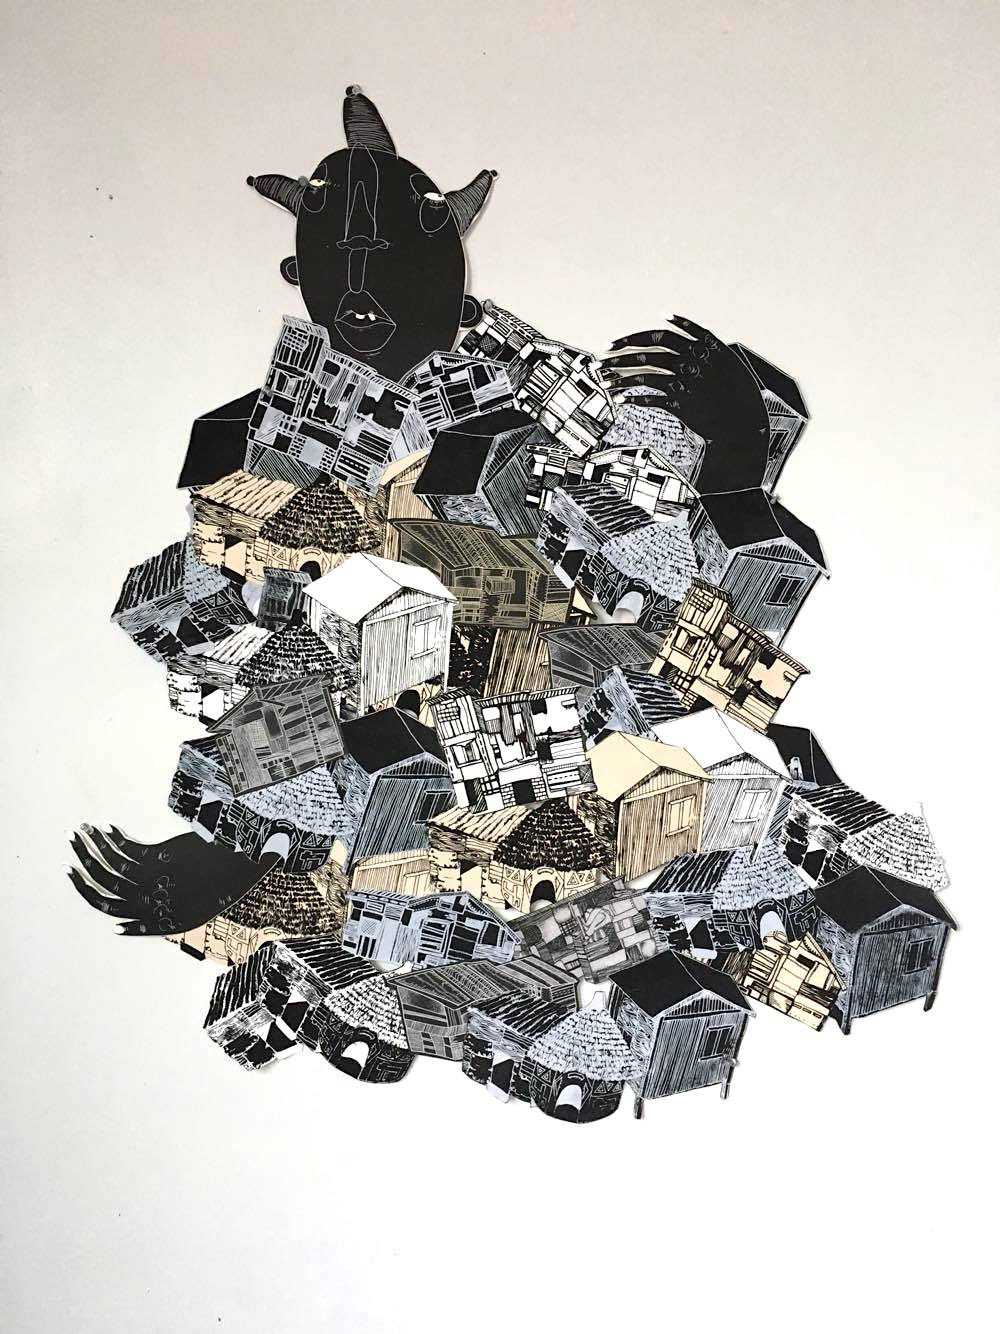 Motherland,my half to a collaboration with Renee Martinez, Screen print, intaglio collaged together, 4 x 3 feet, 2016